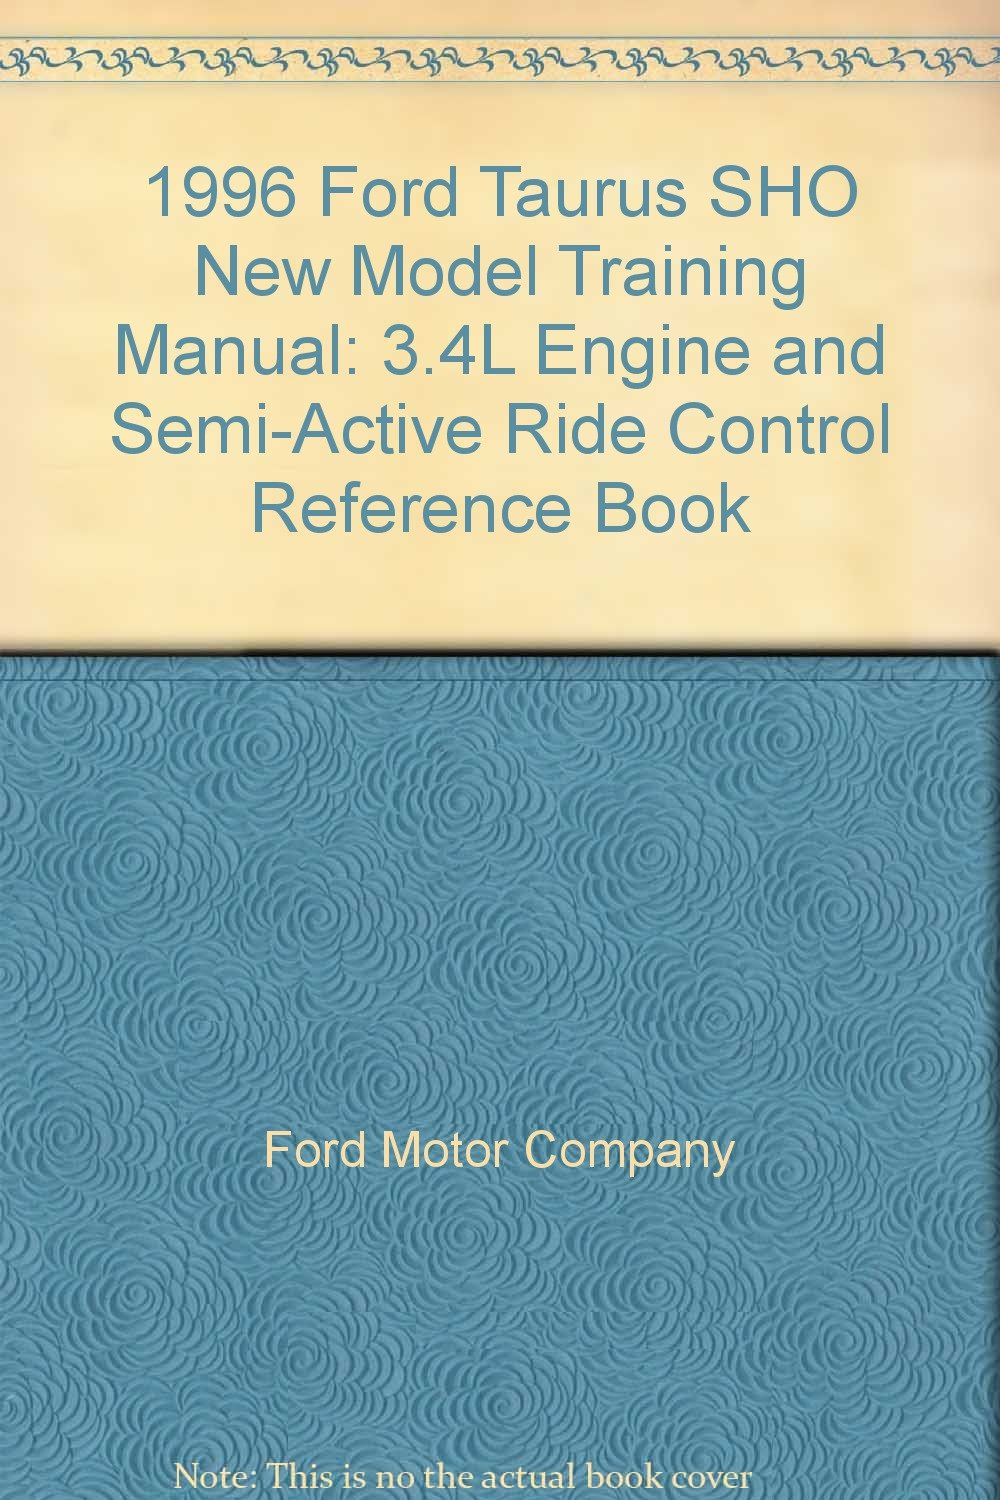 1996 Ford Taurus SHO New Model Training Manual: 3.4L Engine and Semi-Active Ride Control Reference Book